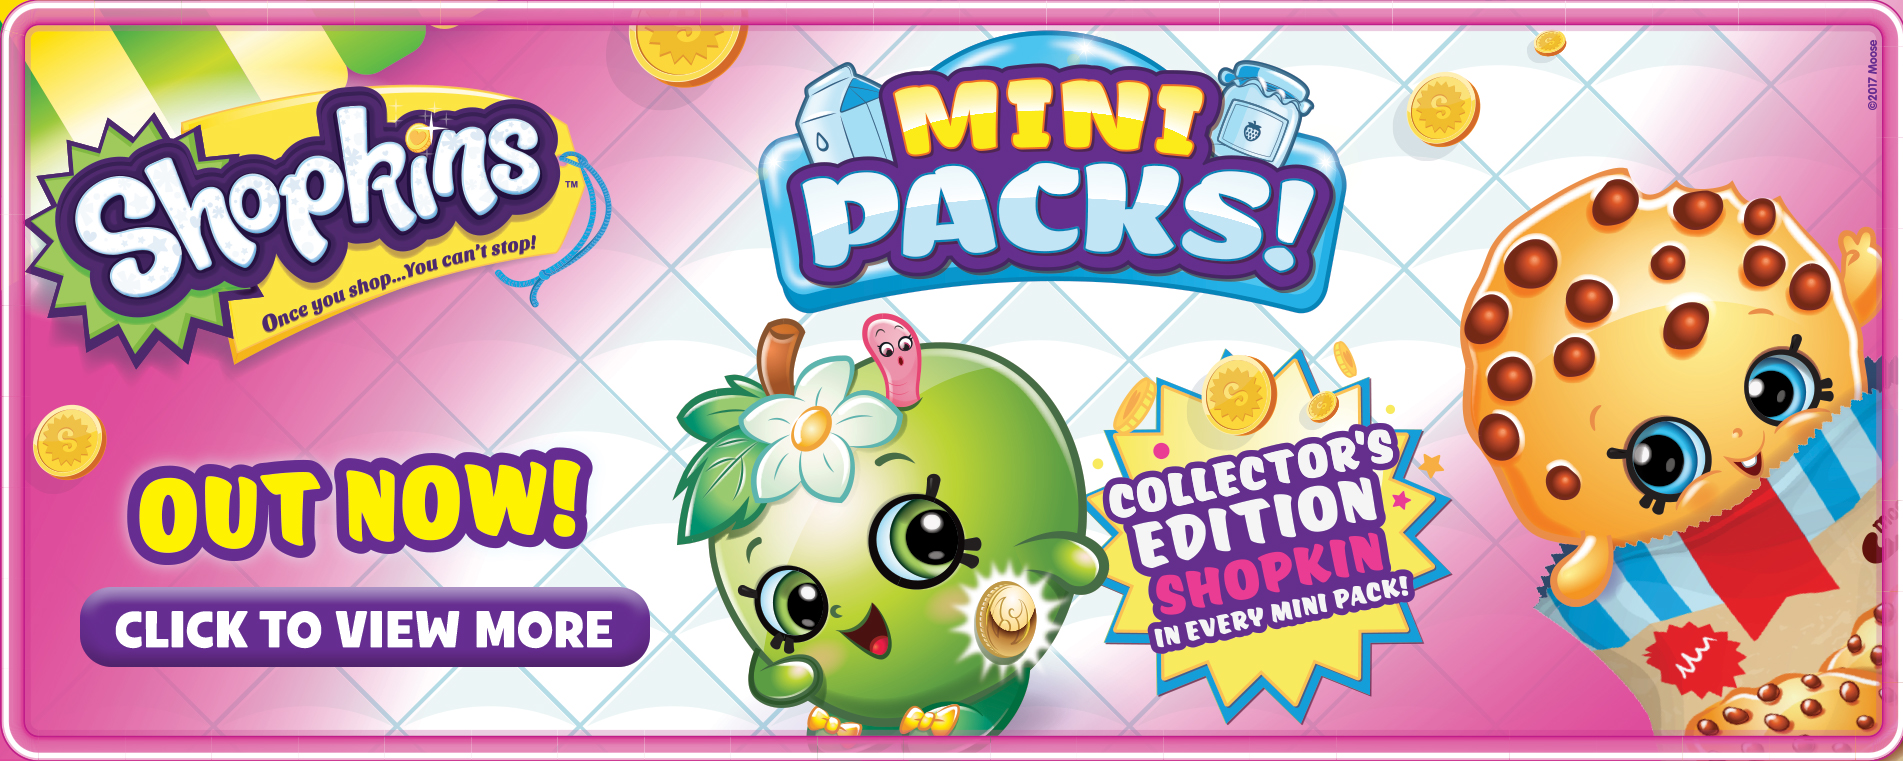 Shopkins Mini Packs